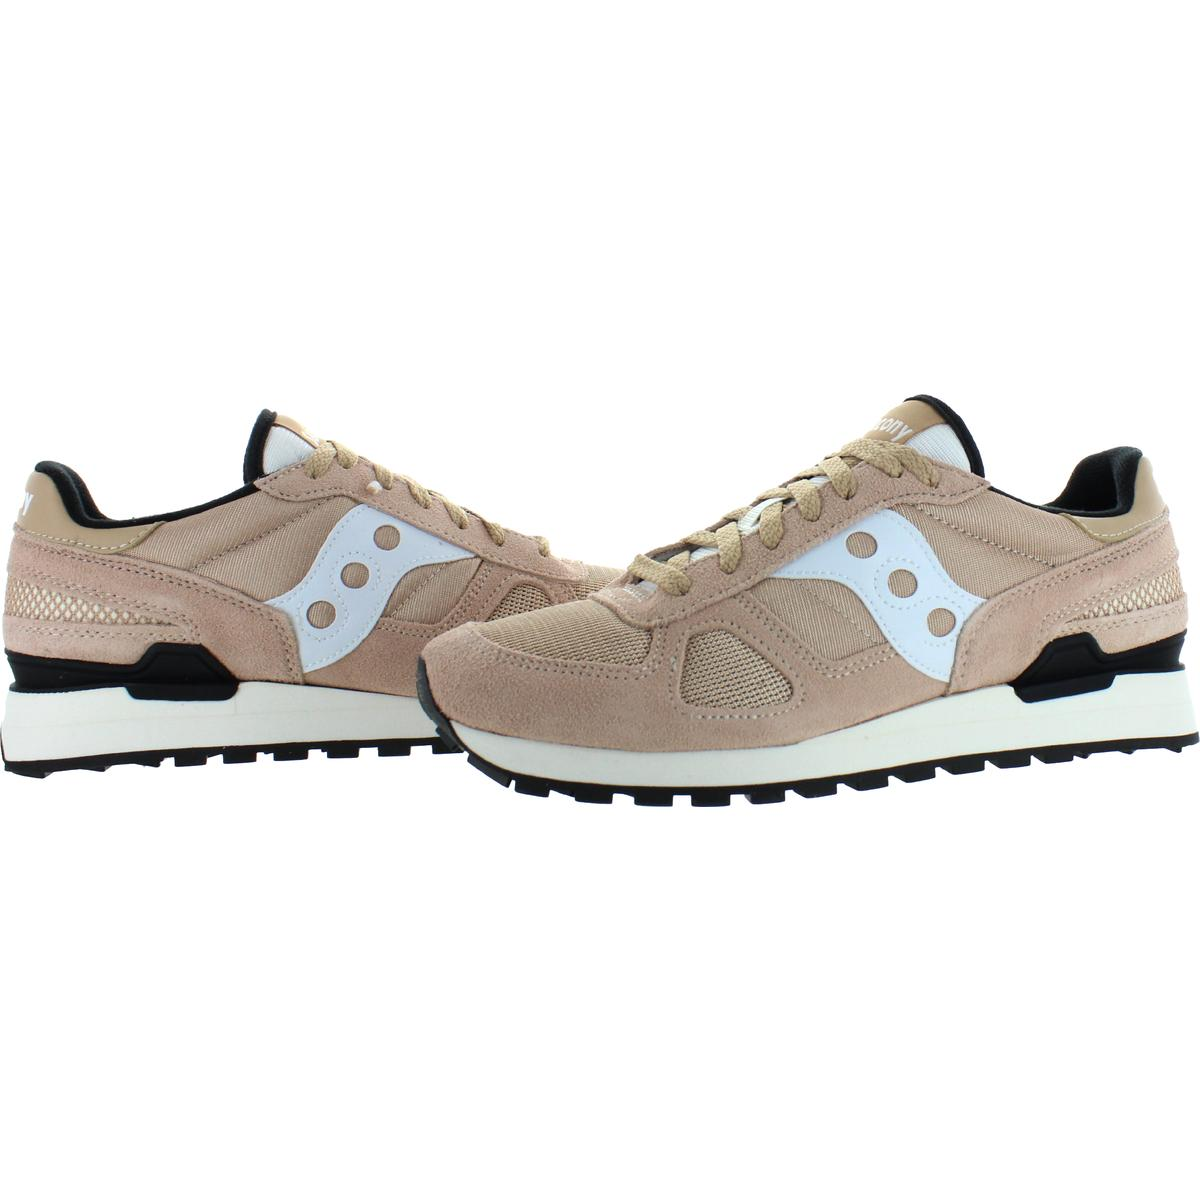 Saucony-Mens-Shadow-Original-Trainers-Suede-Comfort-Sneakers-Shoes-BHFO-0431 miniatuur 34